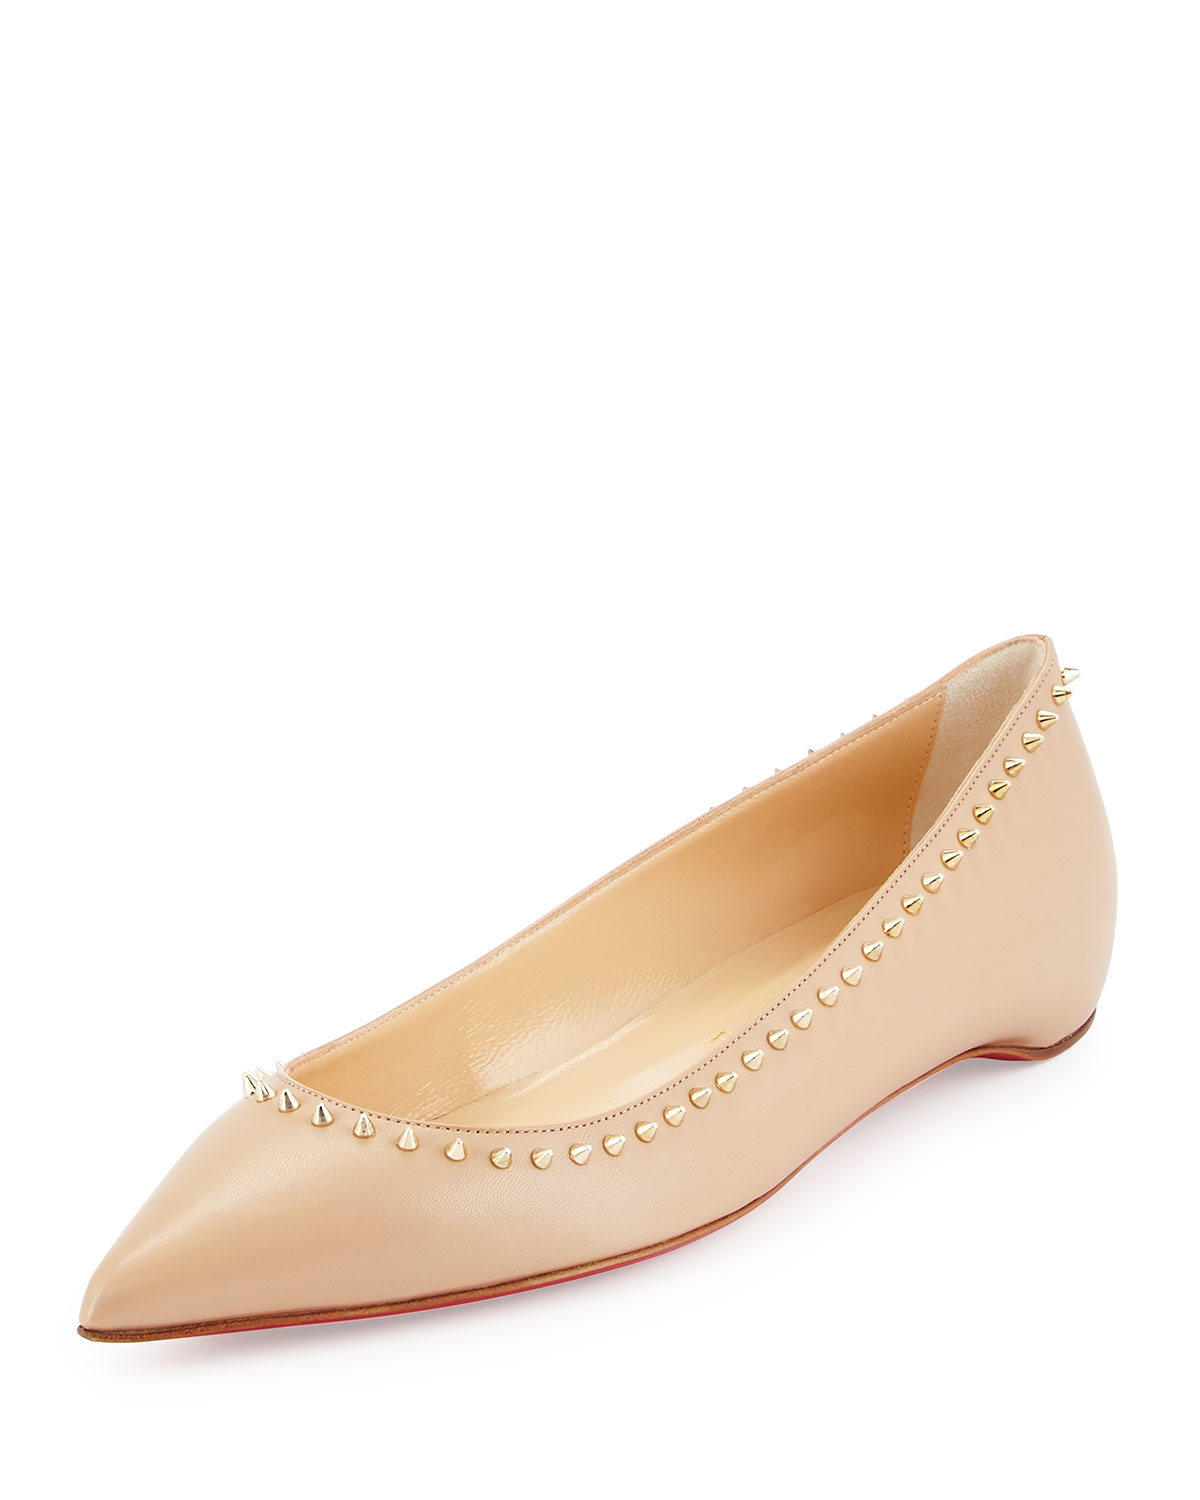 29ae3d96c Christian Louboutin Anjalina Studded Leather Ballet Flats in Natural ...